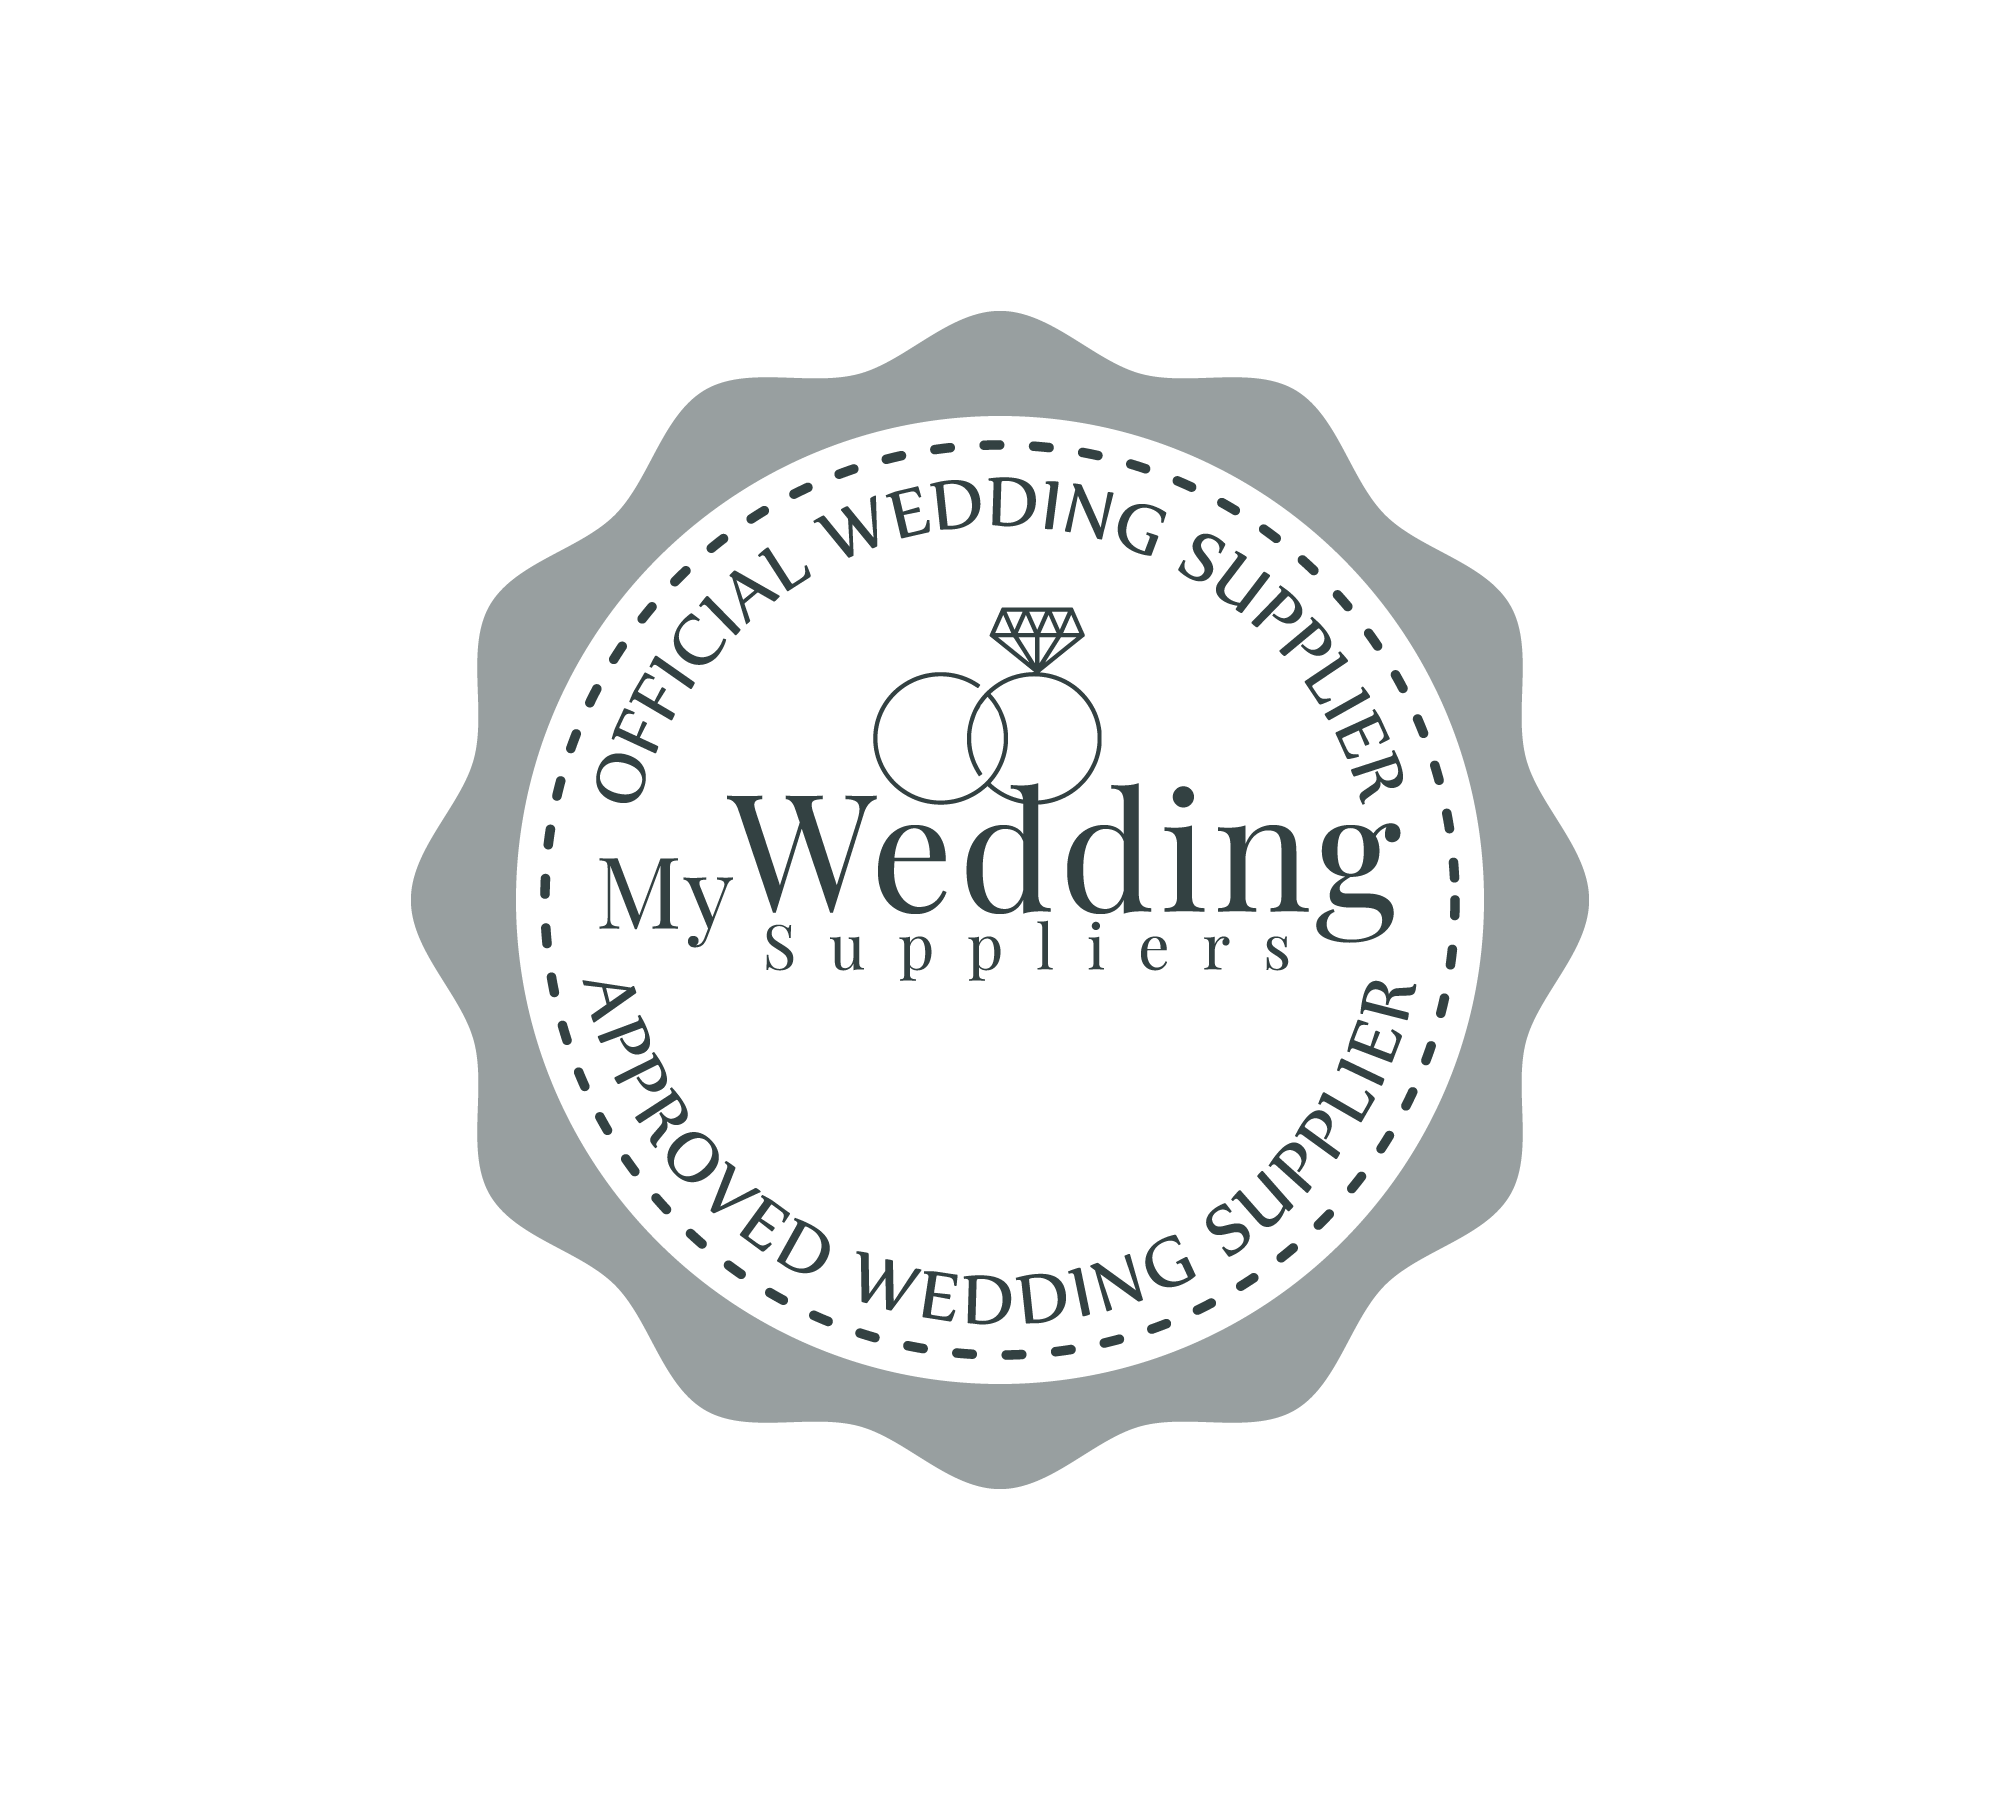 my-wedding-suppliers-1 badge.png